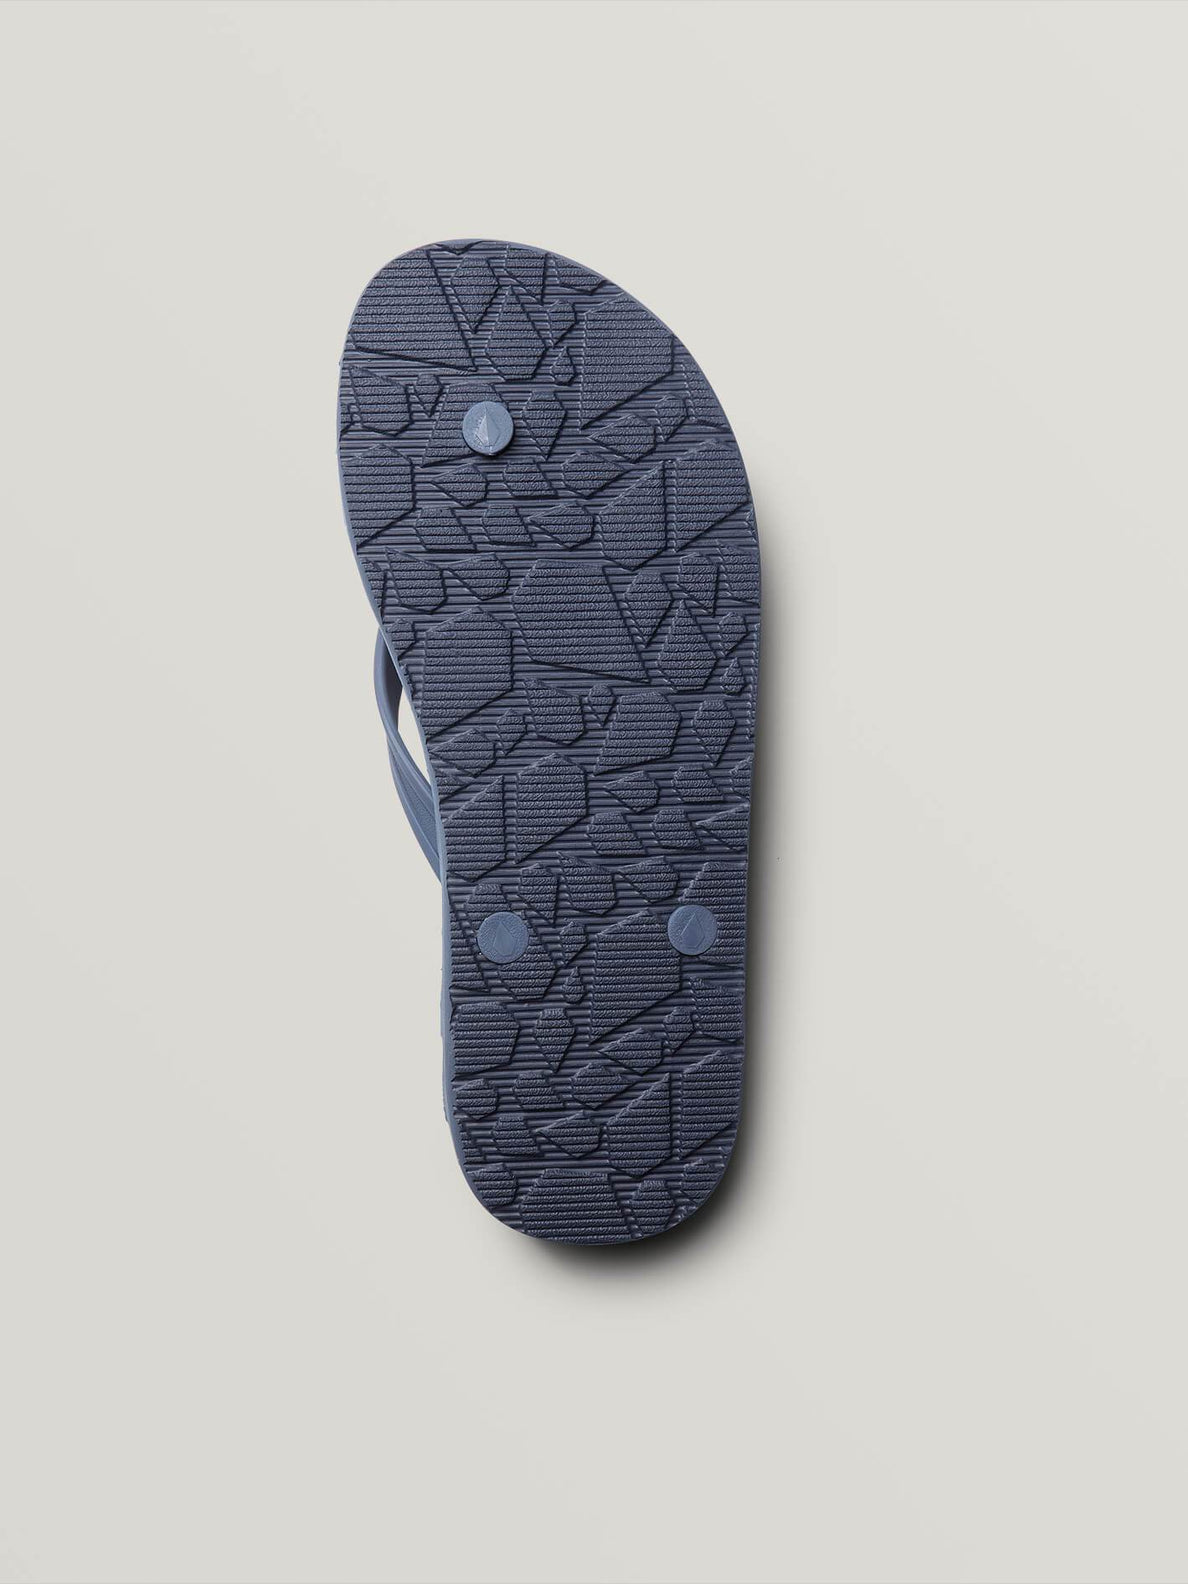 Recliner Rubber 2 Sandals In Slate Blue, Second Alternate View